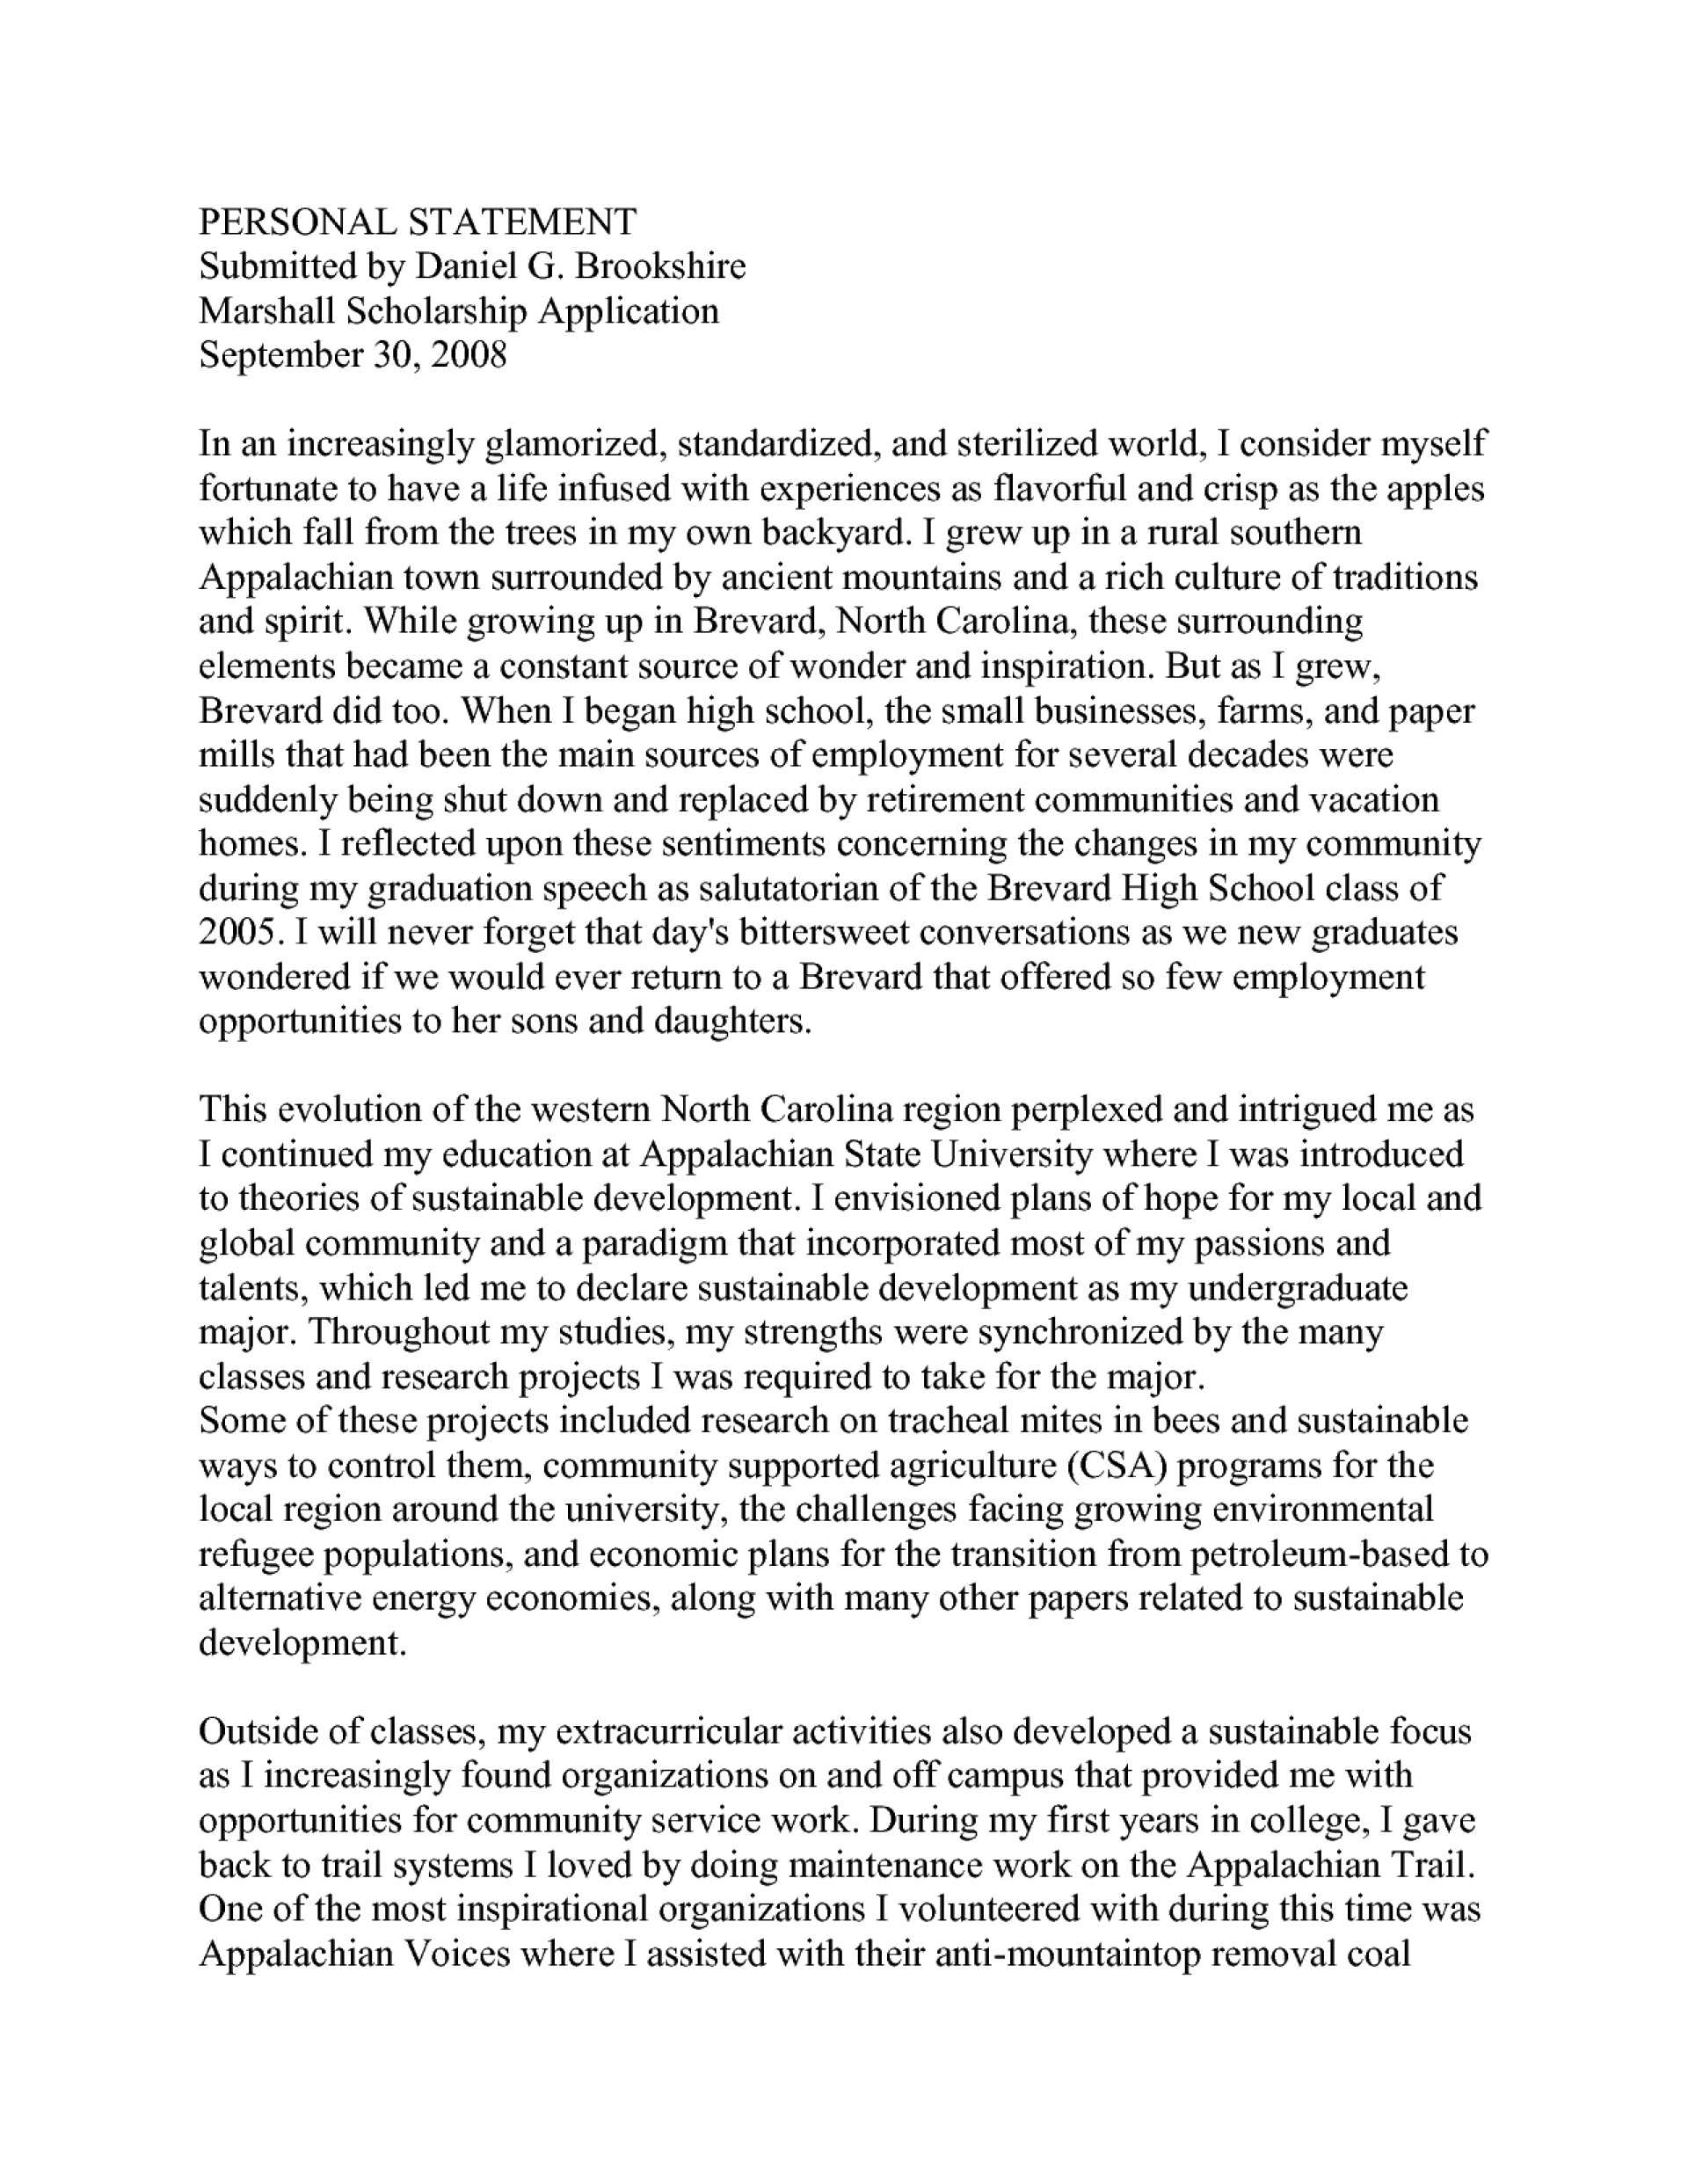 008 Scholarship Personal Statement Template Nsvwiupr College Essay Header Archaicawful Application Margins 1920